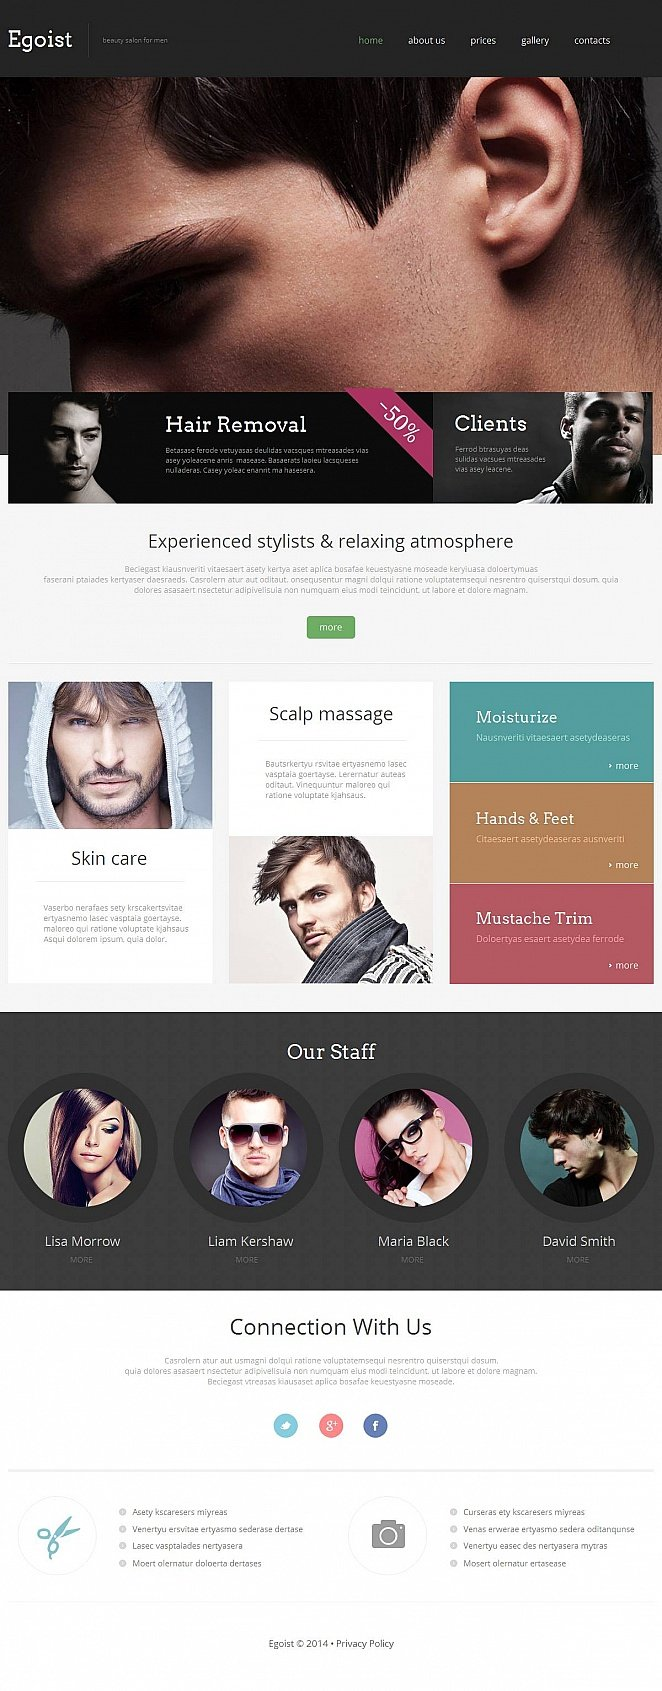 Stylists and Barbers Website Template - image